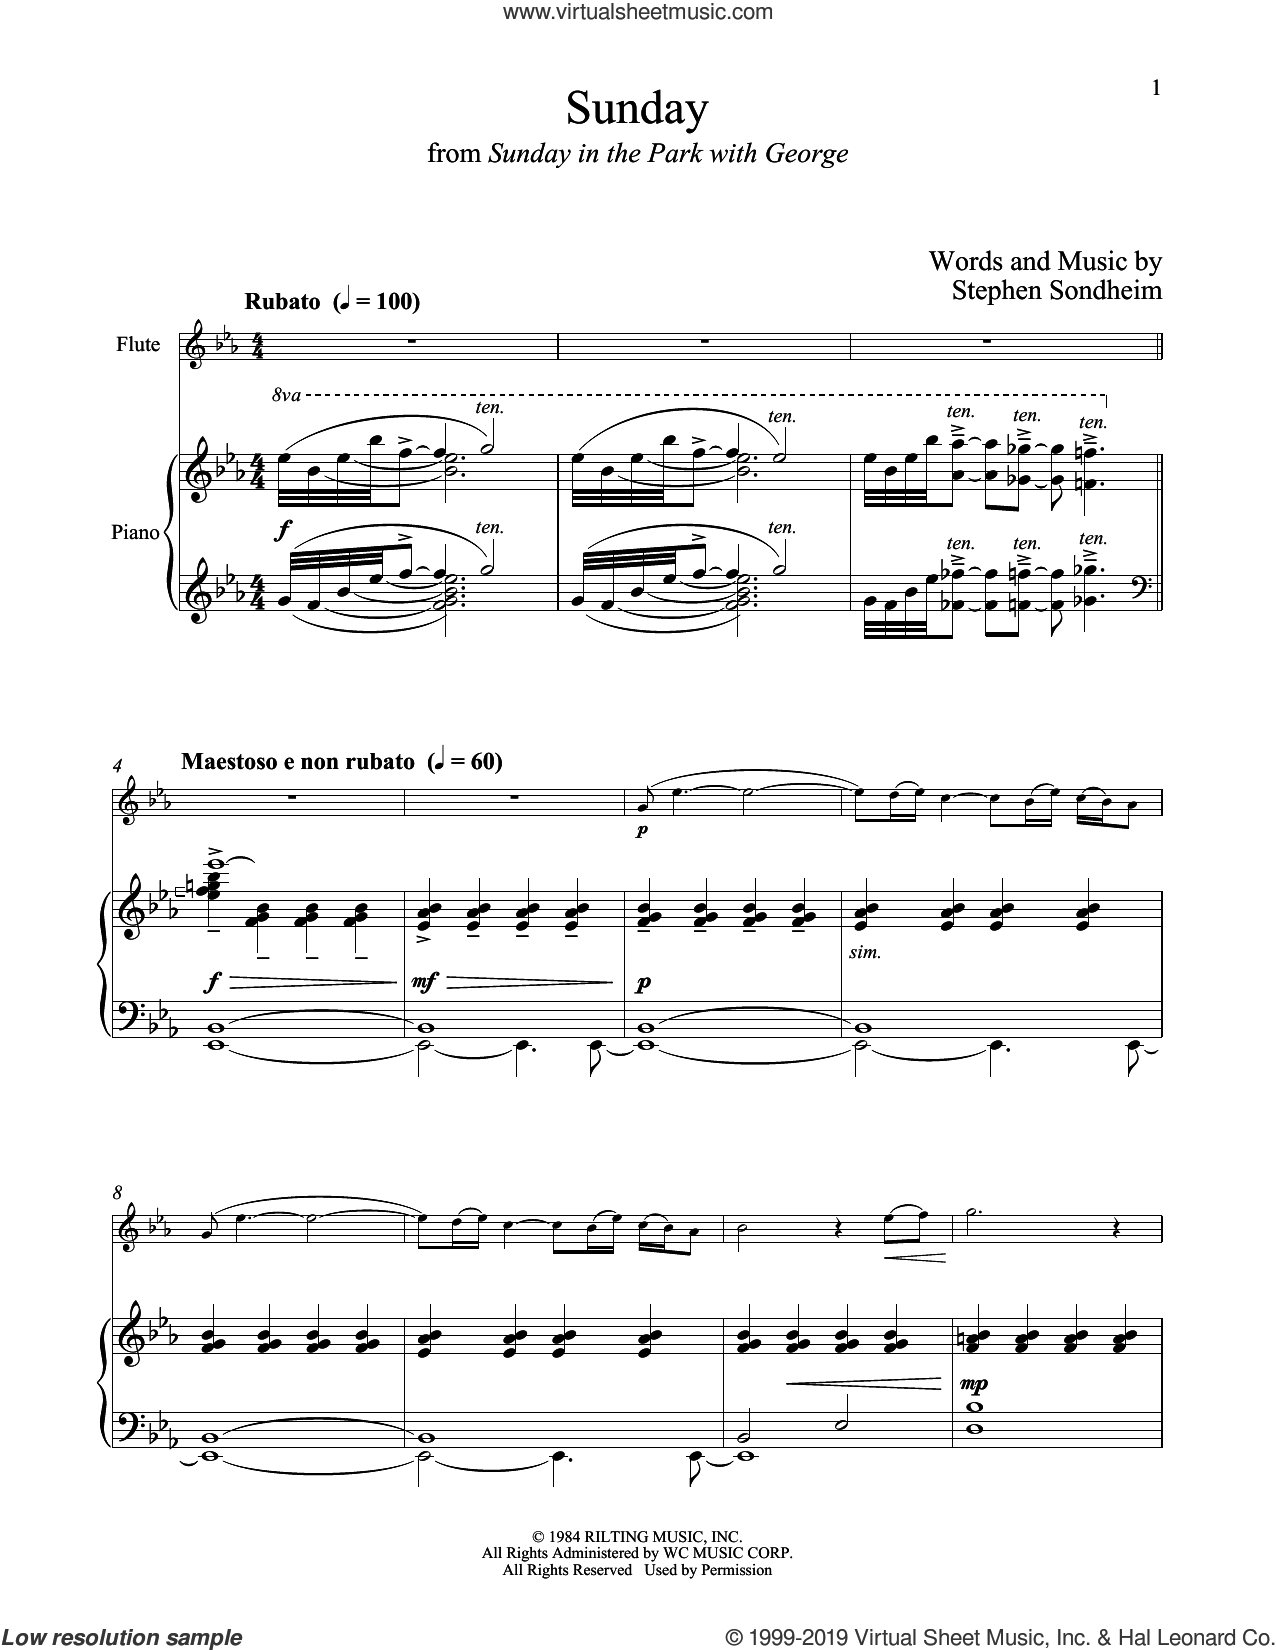 Sunday (from Sunday in the Park with George) sheet music for flute and piano by Stephen Sondheim, intermediate skill level